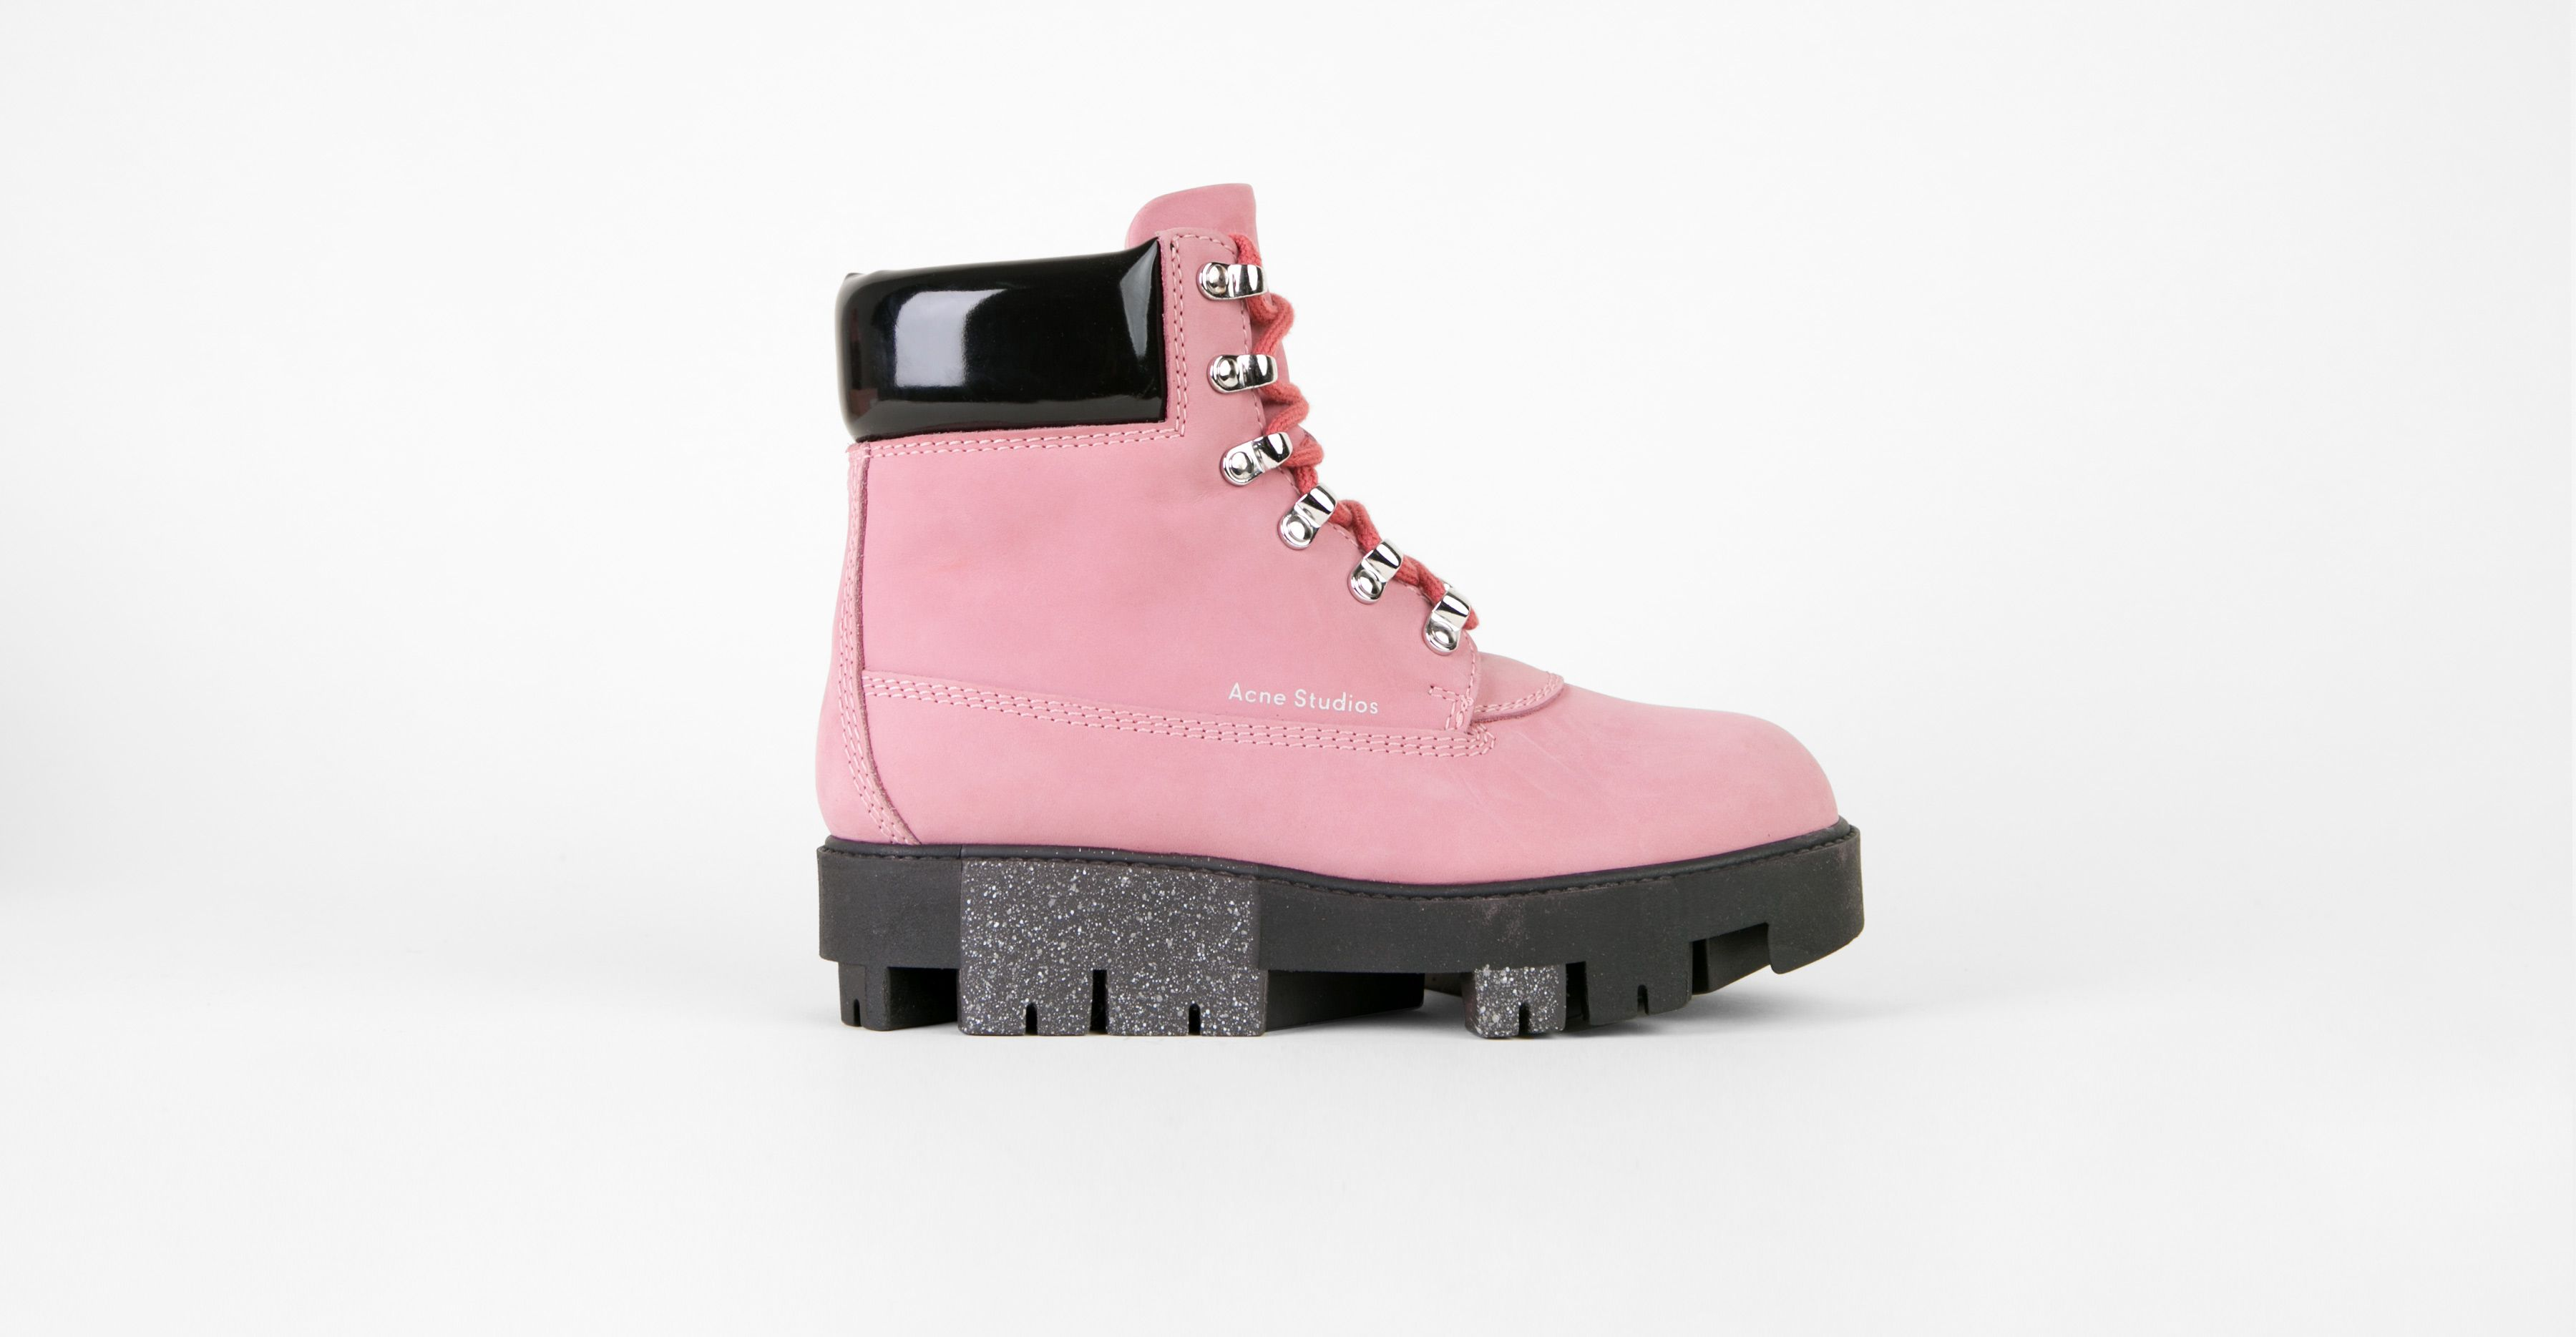 acne-studios-telde-boot-bubble-pink-black-2